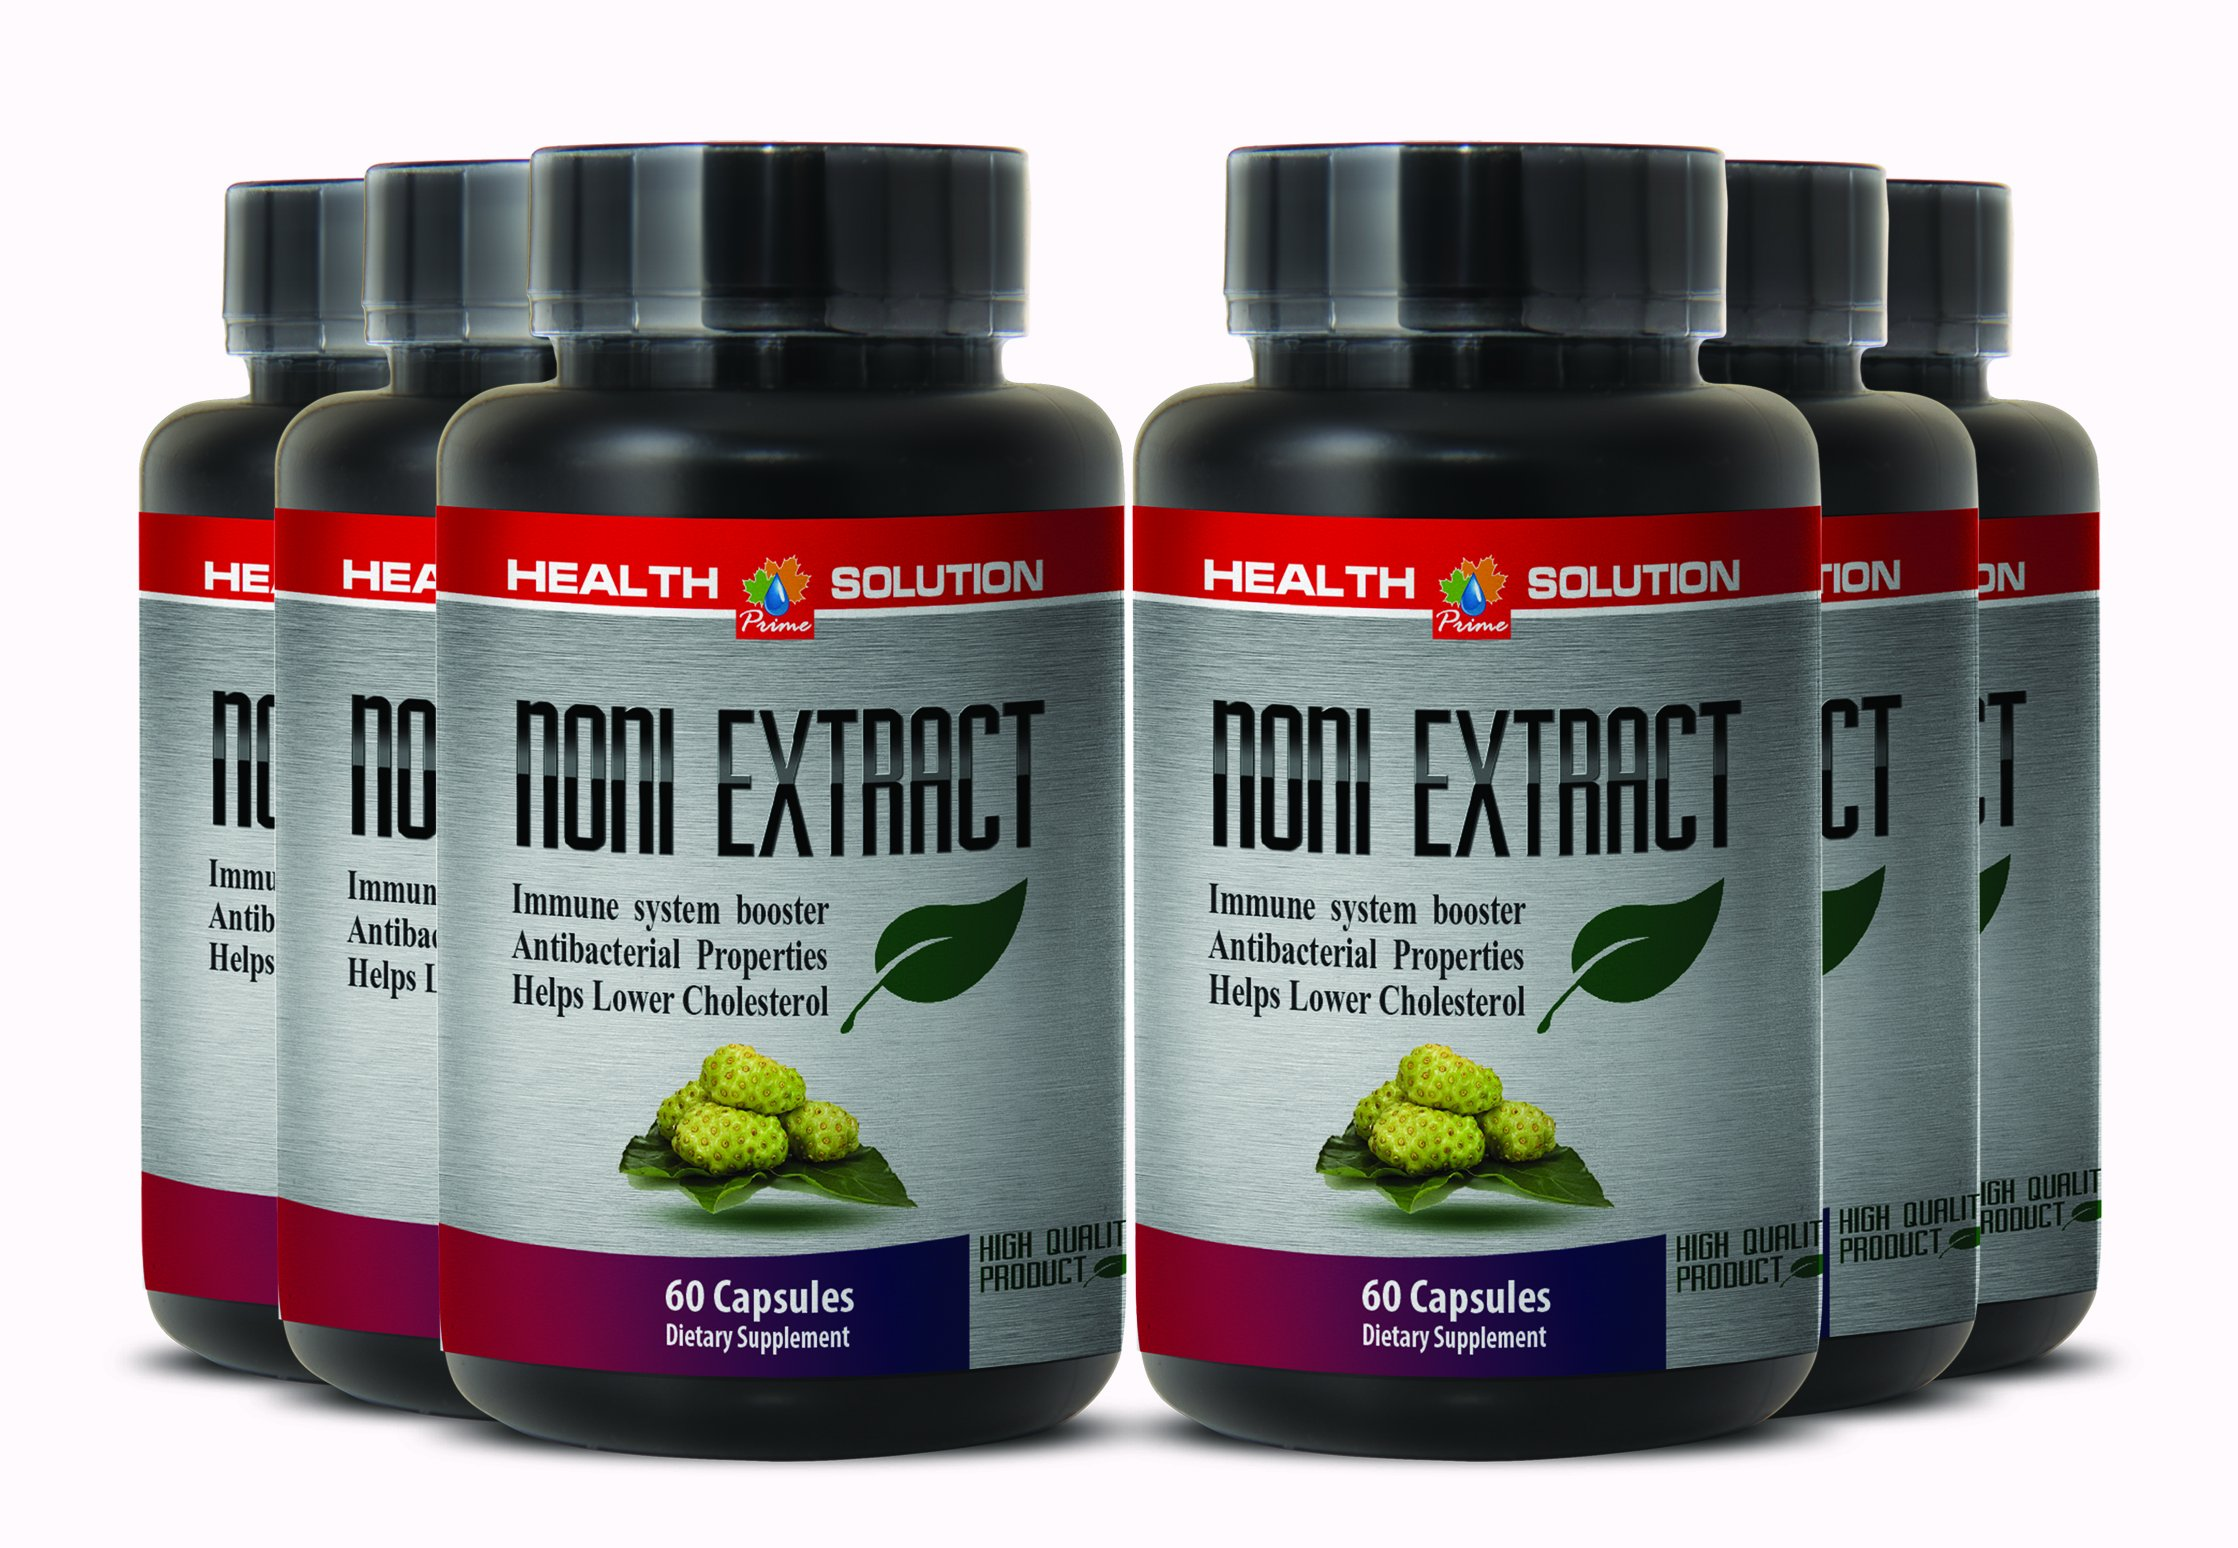 Noni leaf extract organic - NONI 8:1 CONCENTRATE 500MG - improve performance (6 Bottles)